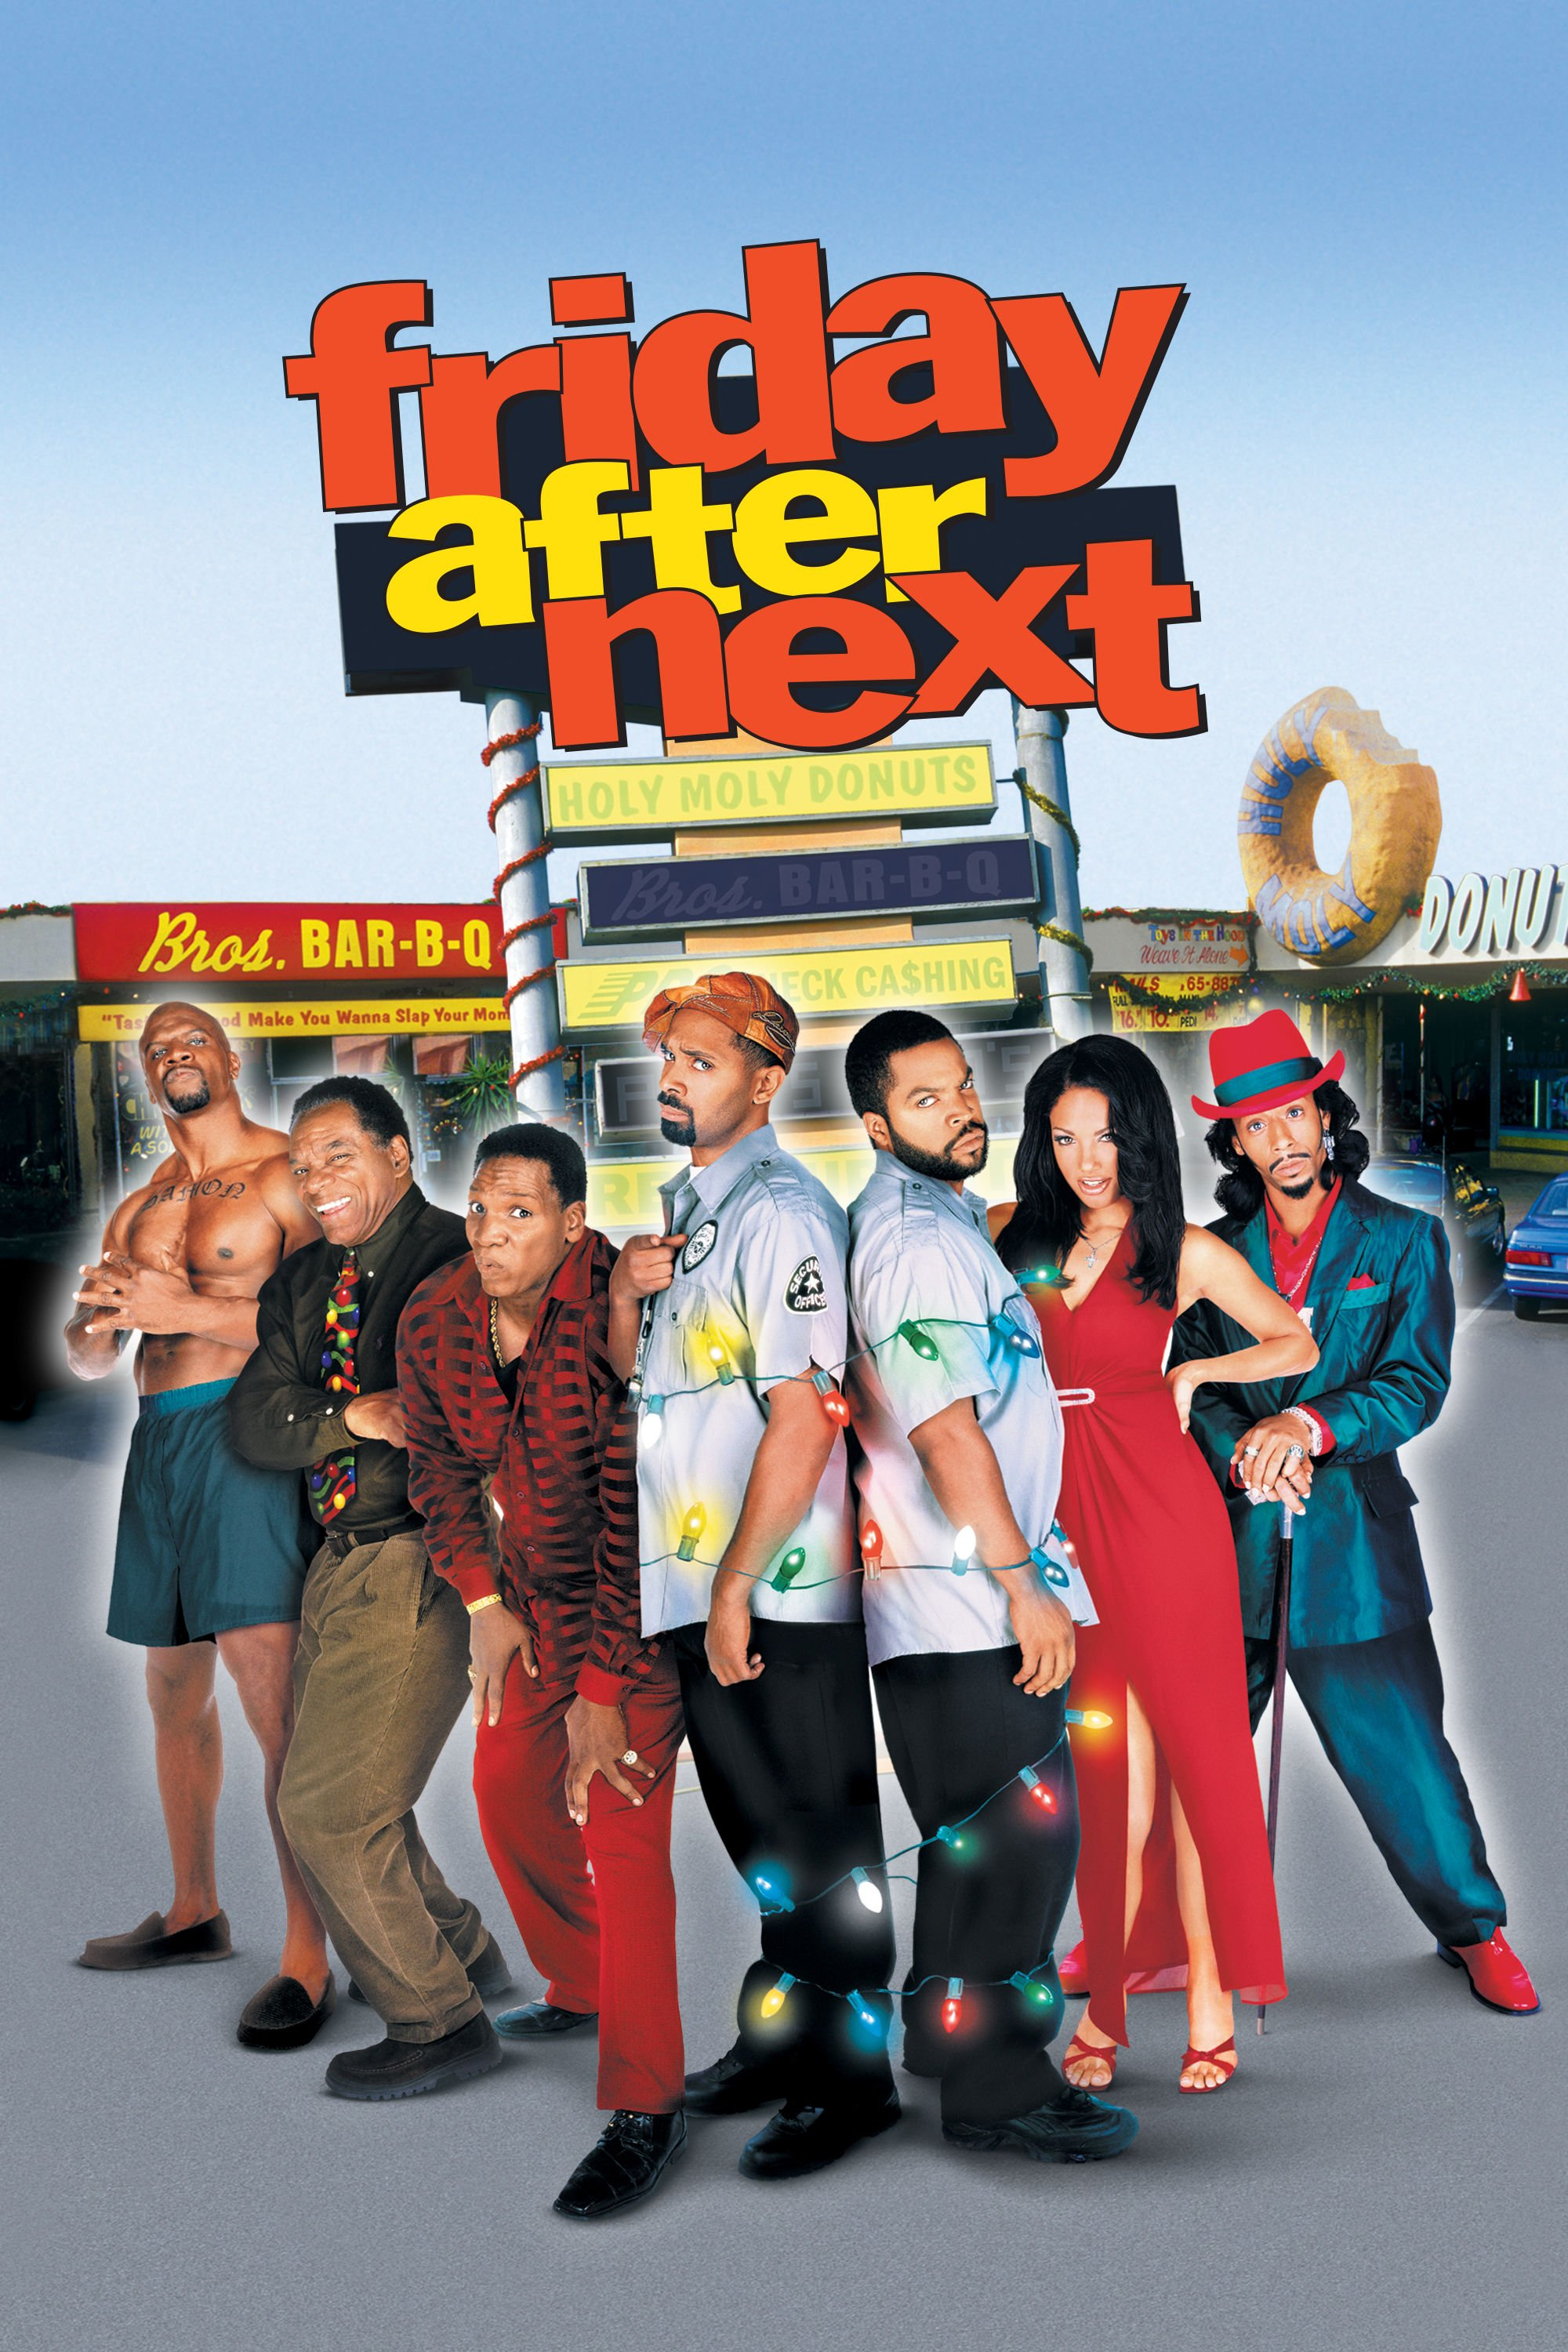 friday-after-next-filming-locations-dvd-poster